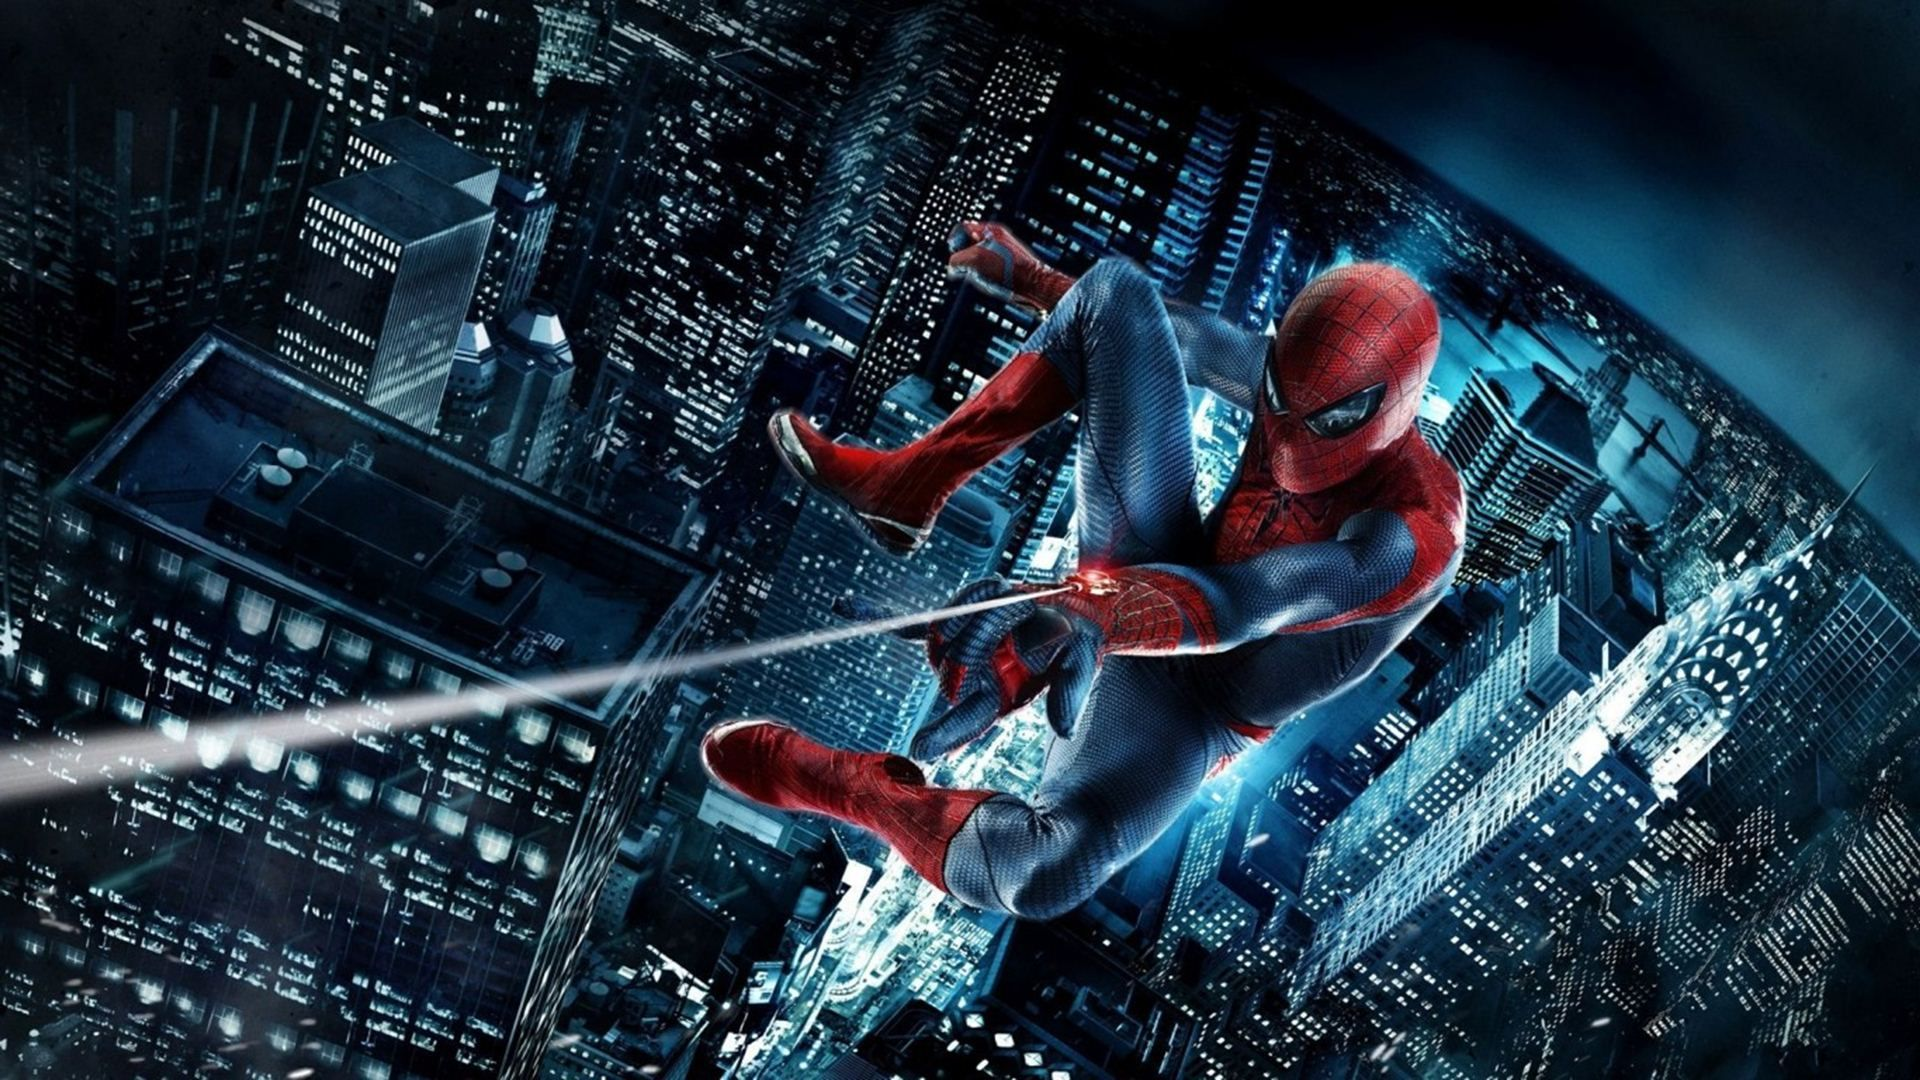 amazing spiderman live wp android apps on google play 1024 768 the